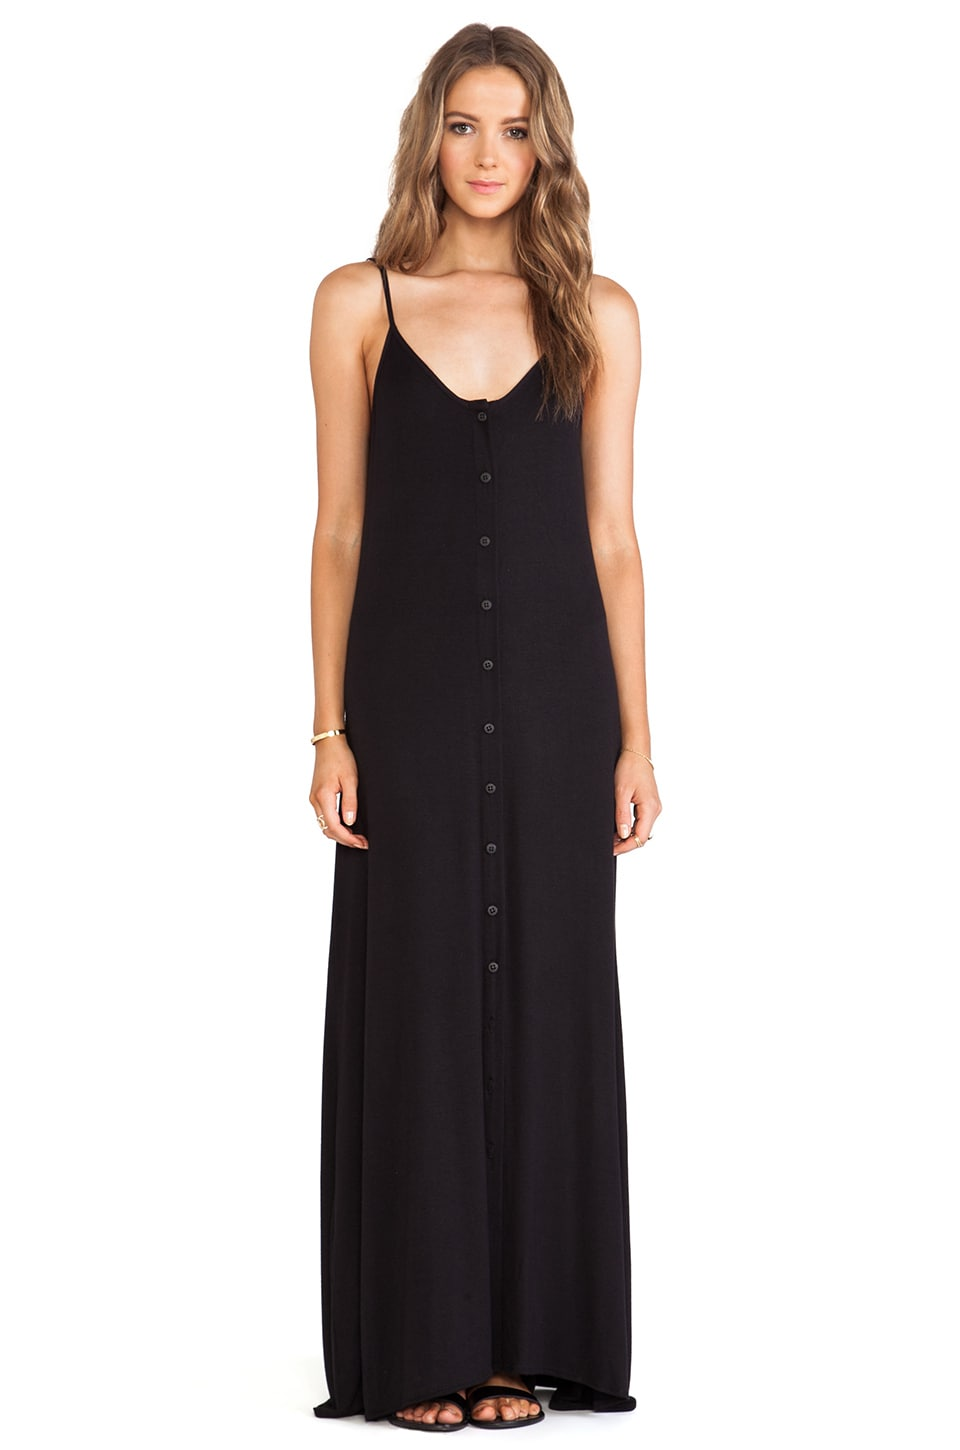 De Lacy DeLacy Olympic Maxi Dress in Black